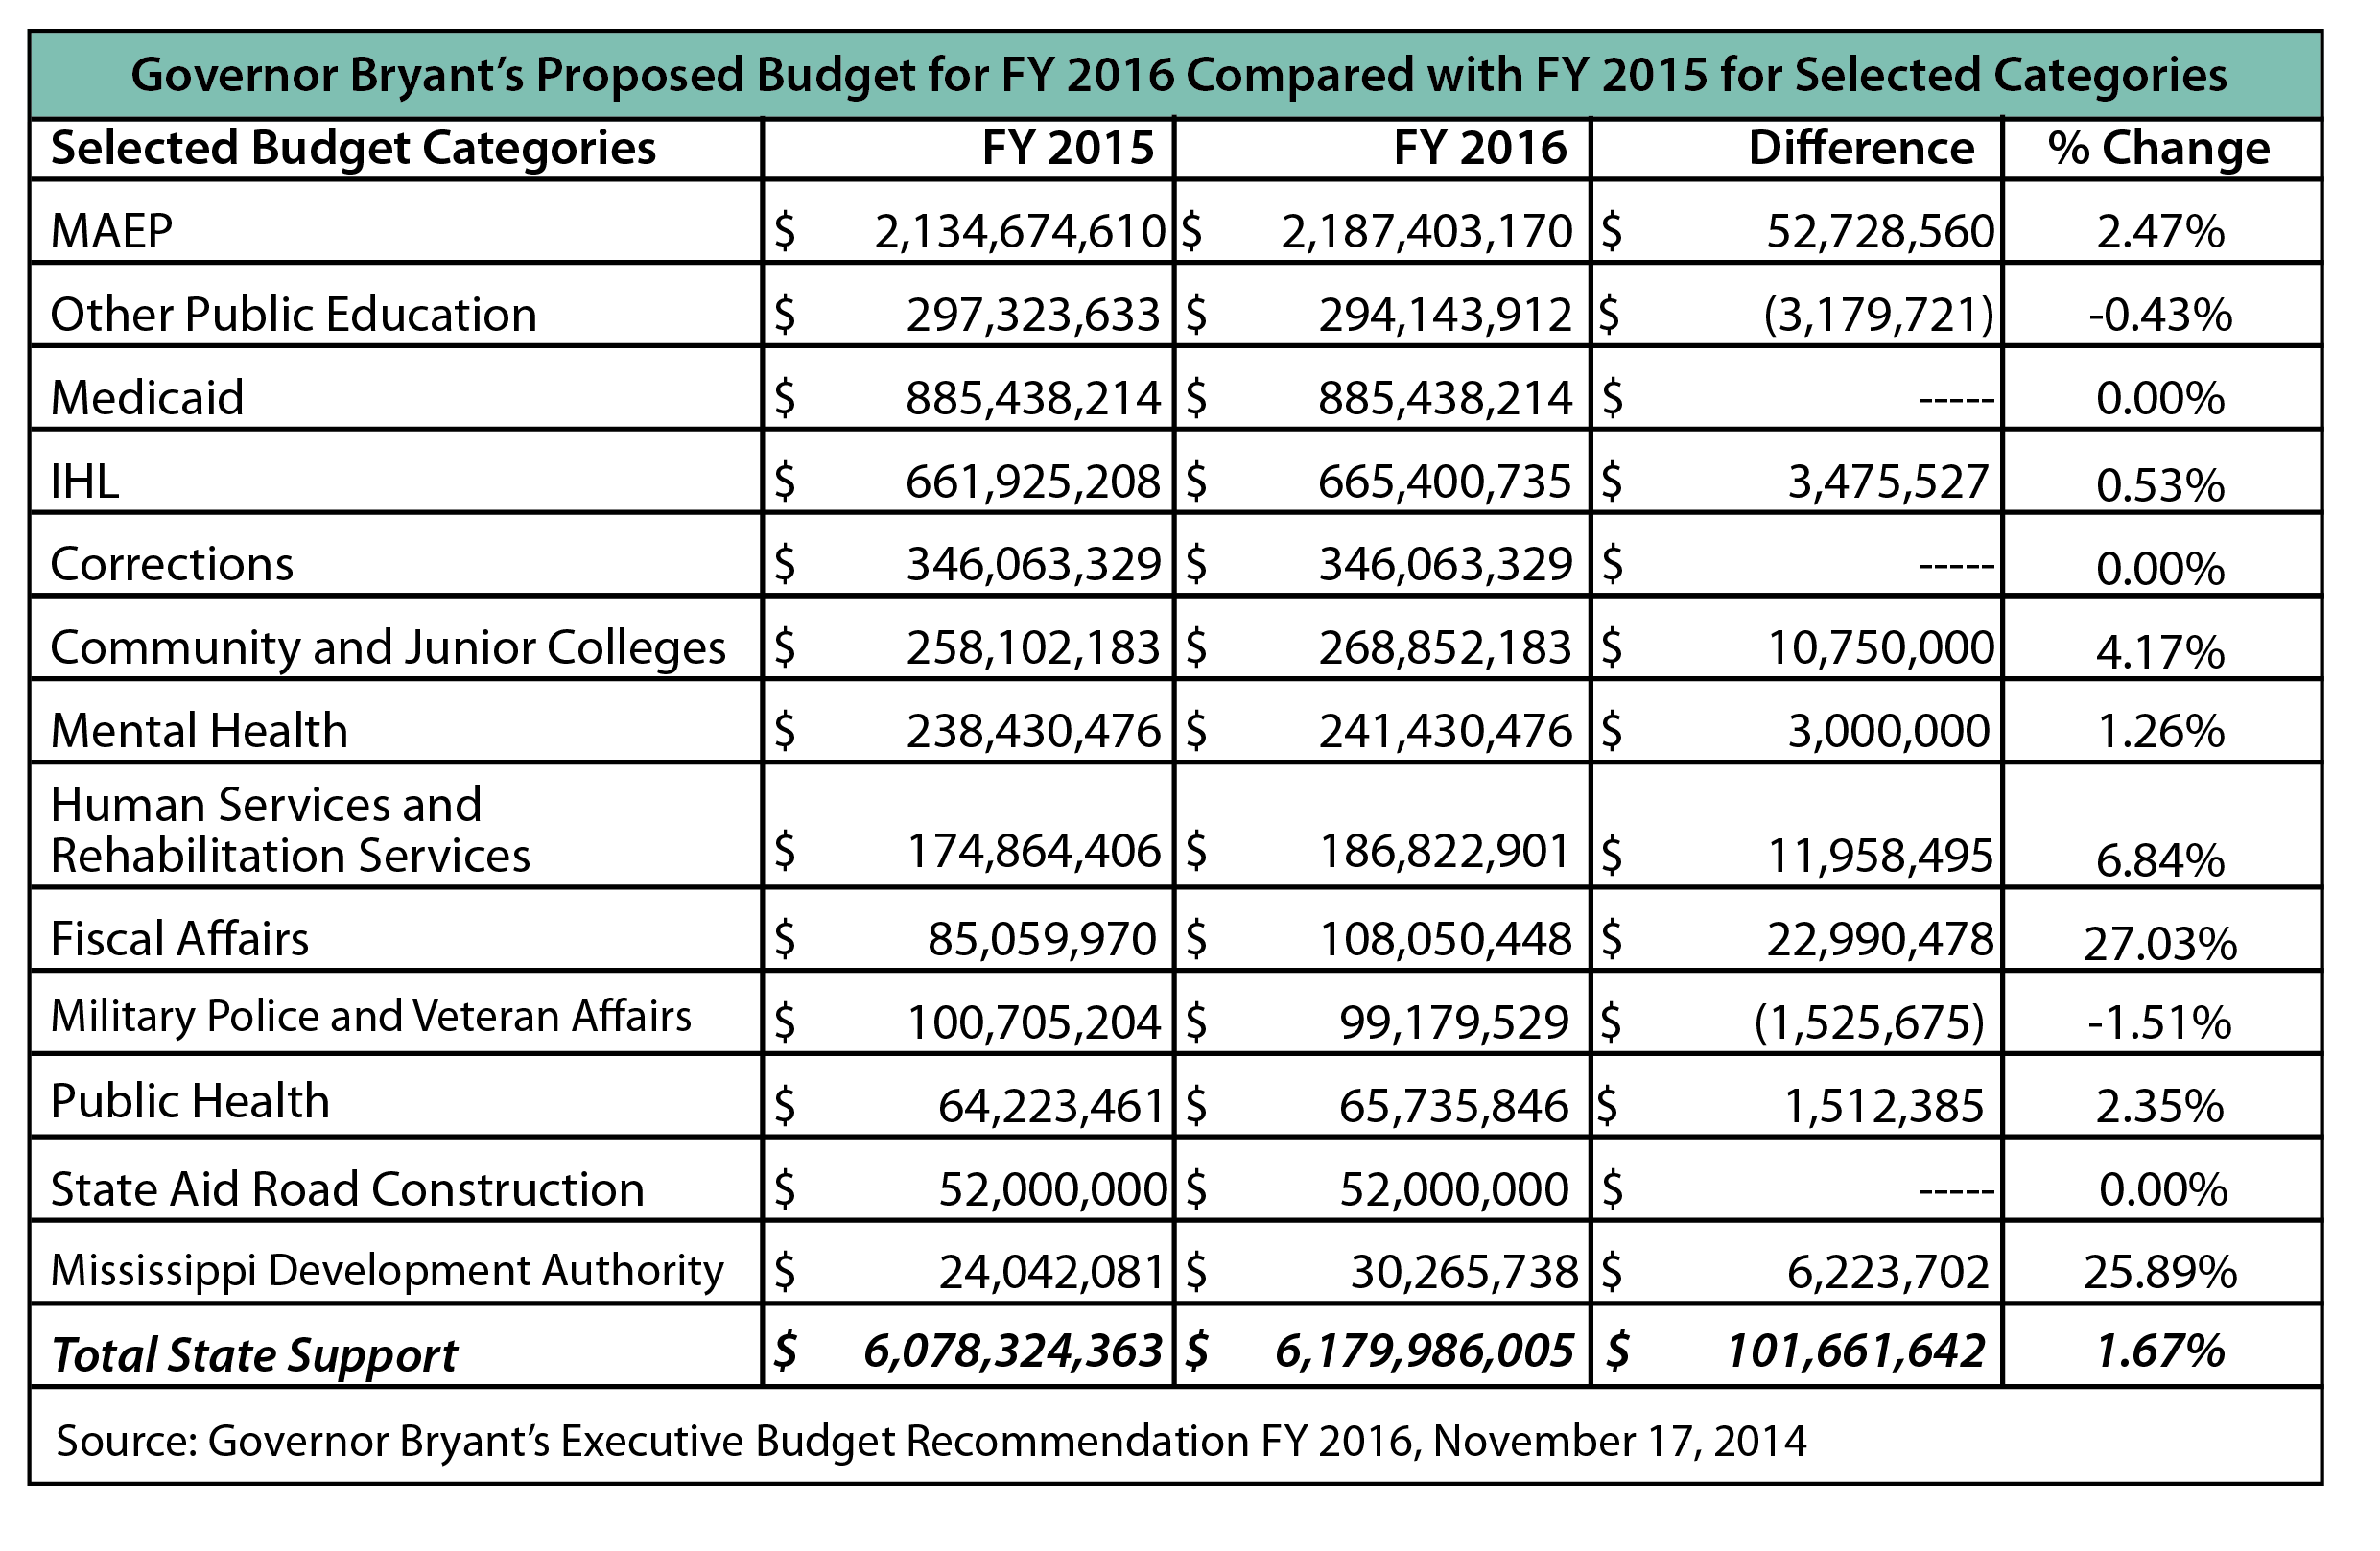 Goveronors Budget FY16 versus FY15-01